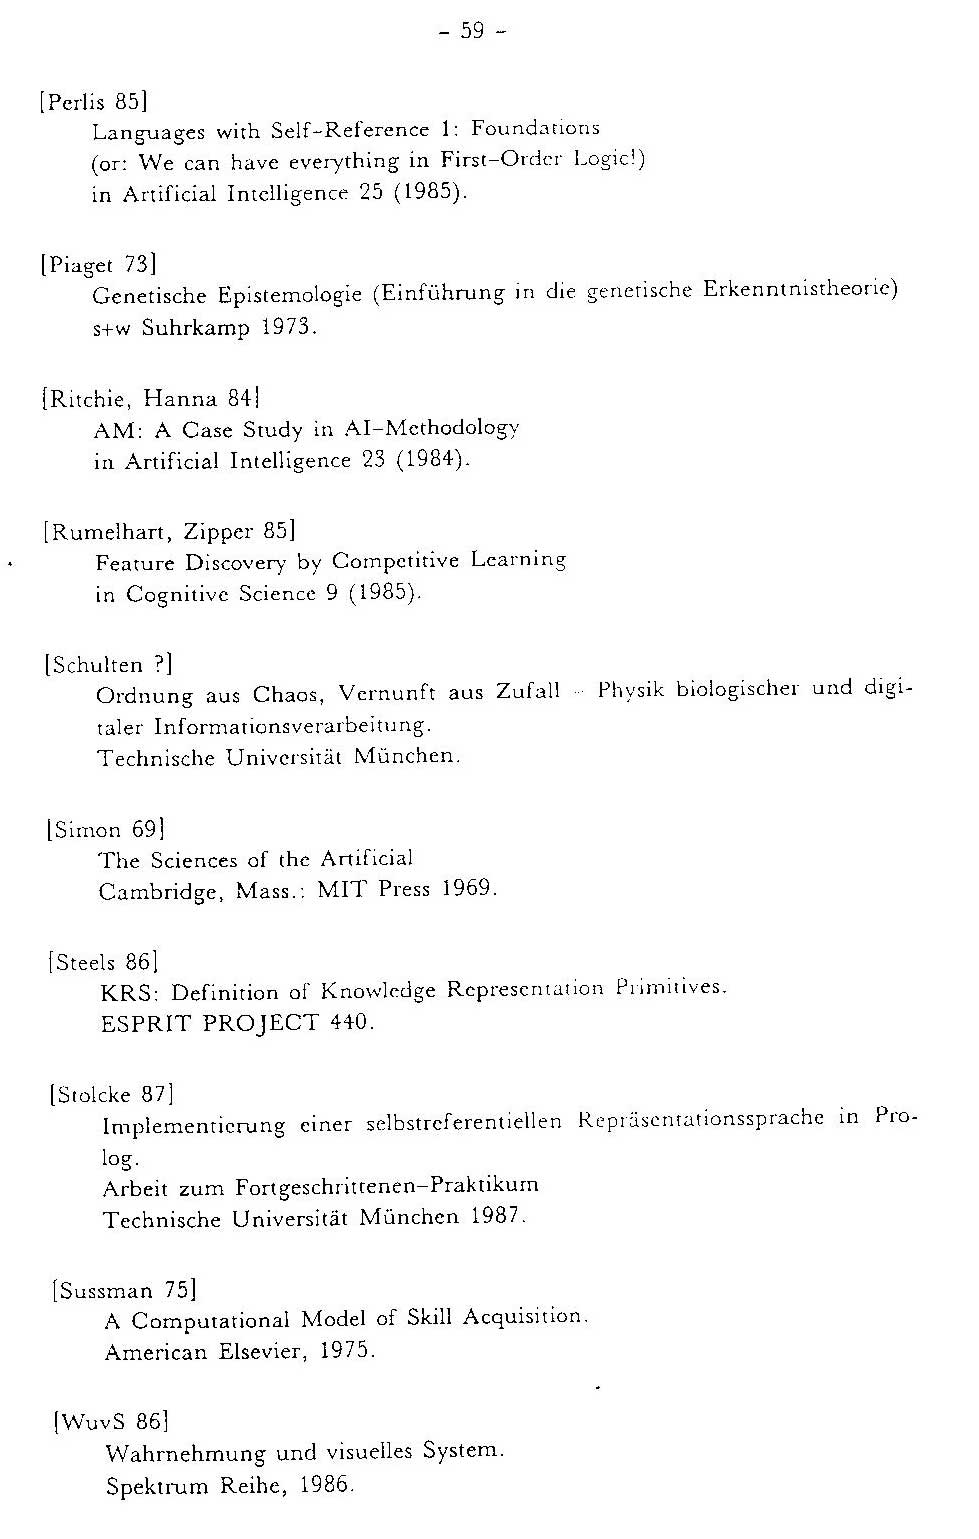 1987 THESIS ON LEARNING HOW TO LEARN, METALEARNING, META GENETIC ...